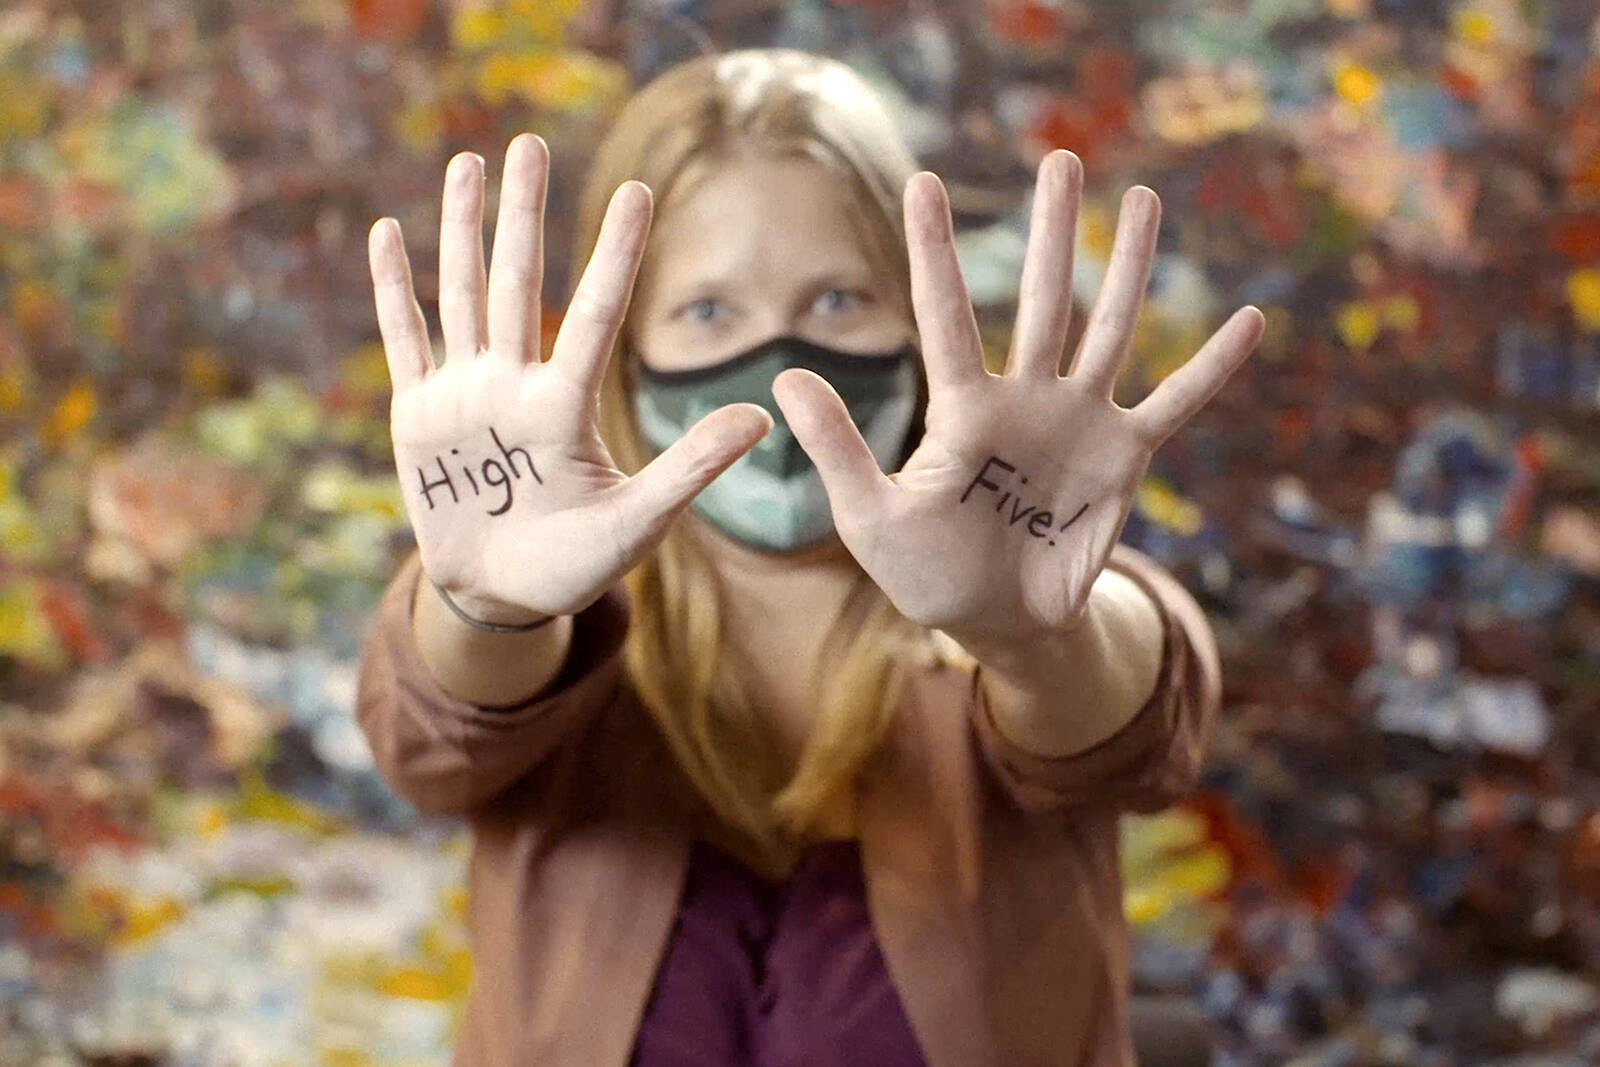 Join the #HealthCareHighFive challenge: donate a denomination of $5 and post a photo or video on social media with your most creative – and COVID-19 friendly – high five. Use the hashtag and tag five friends to do the same!